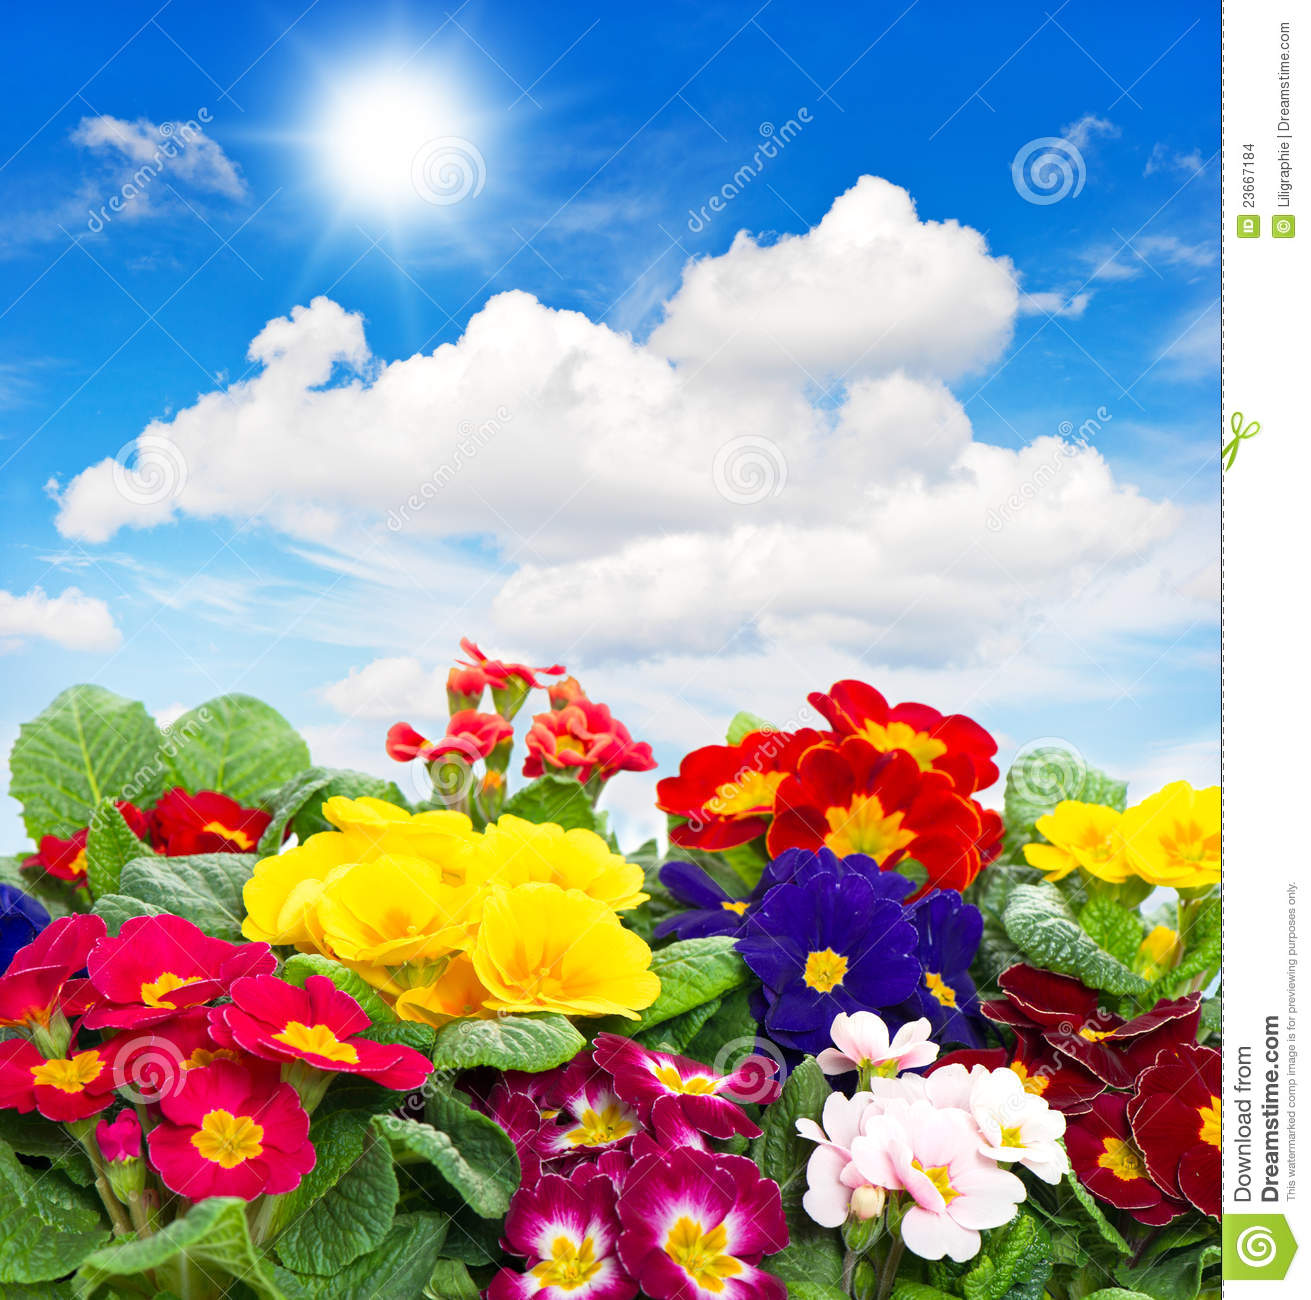 Primula Flowers On Blue Sky Background Stock Images   Image  23667184